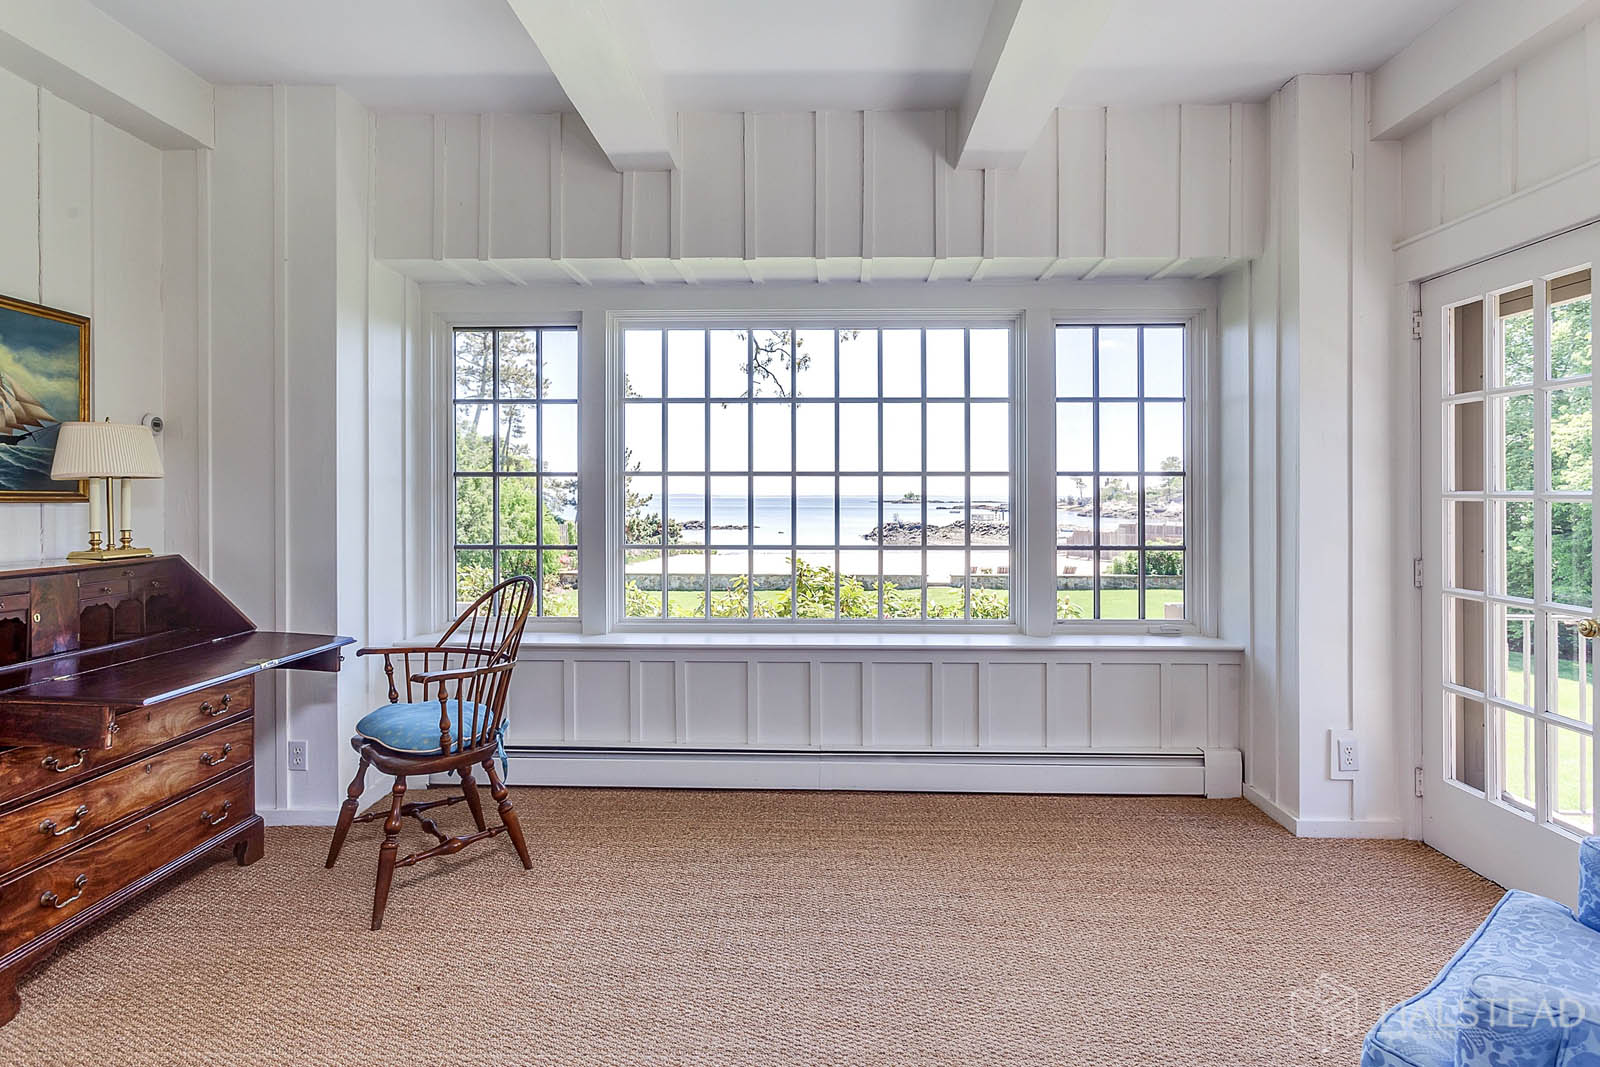 8 Butlers Island Road, Darien, Connecticut, 06820, $7,495,000, Property For Sale, Halstead Real Estate, Photo 17